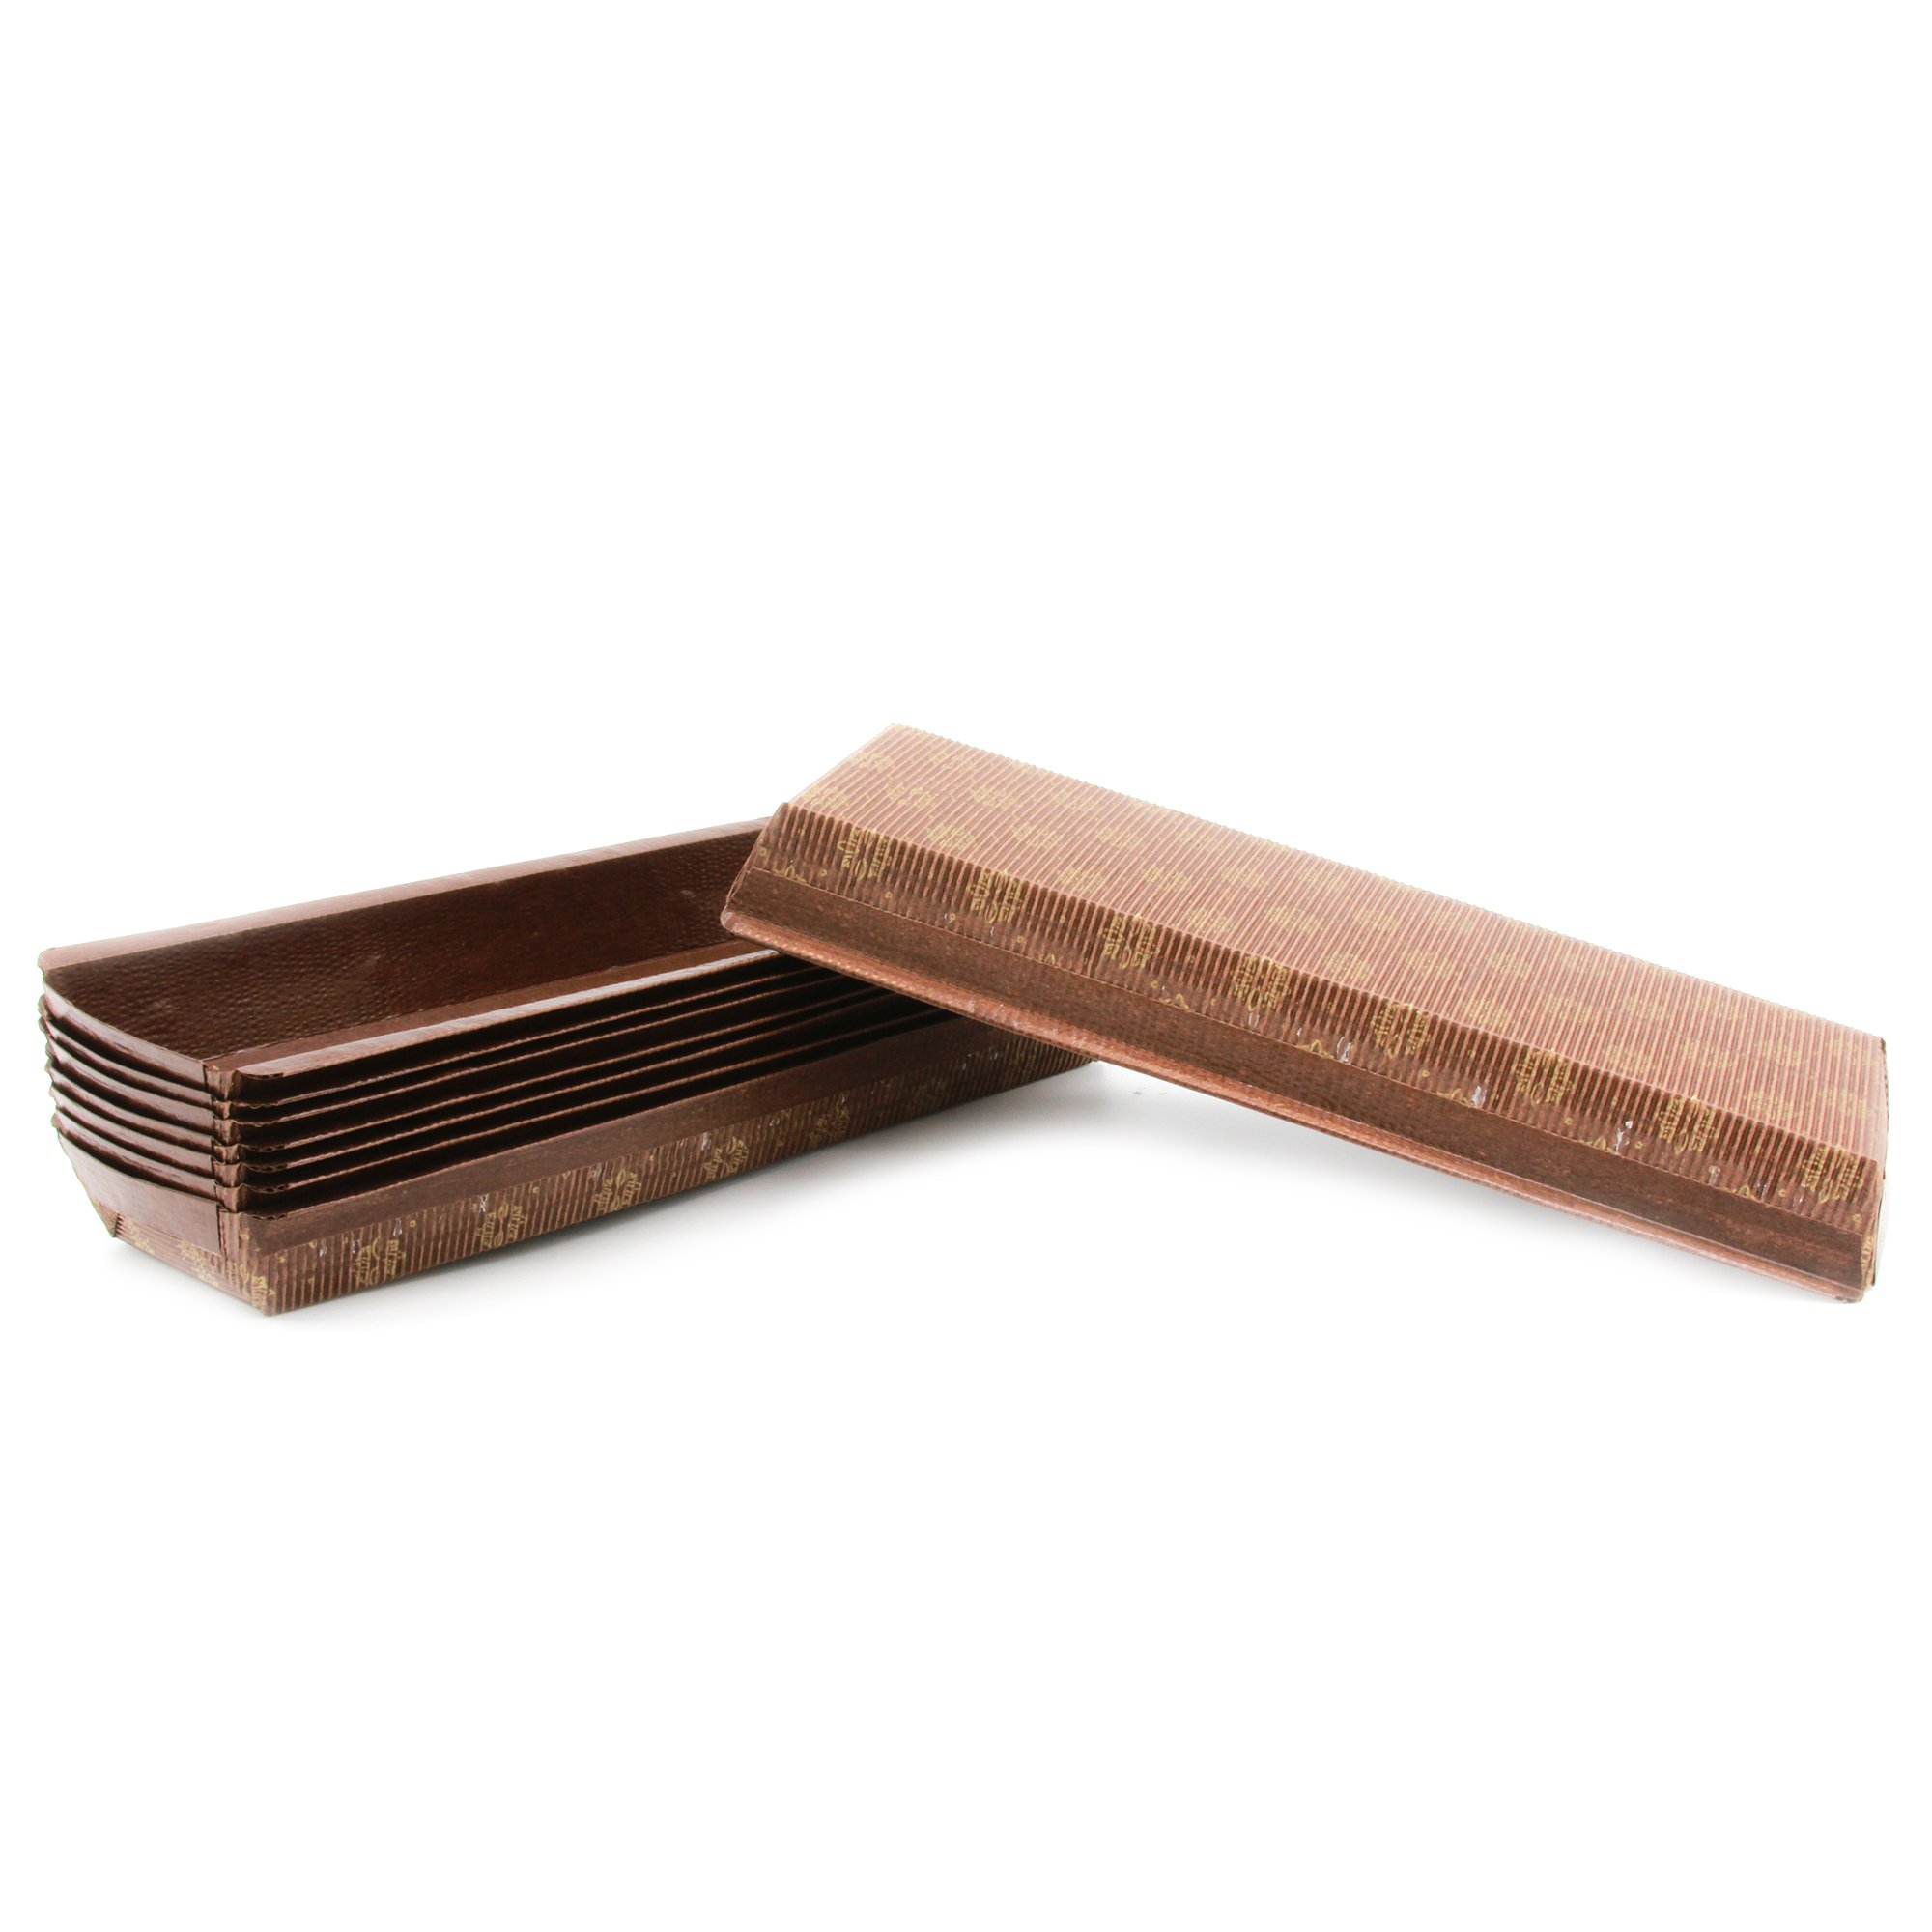 Premium Paper Baking Loaf Pan, Perfect for Chocolate Cake Banana Bread Set of 50 - by EcoBake by Ecobake